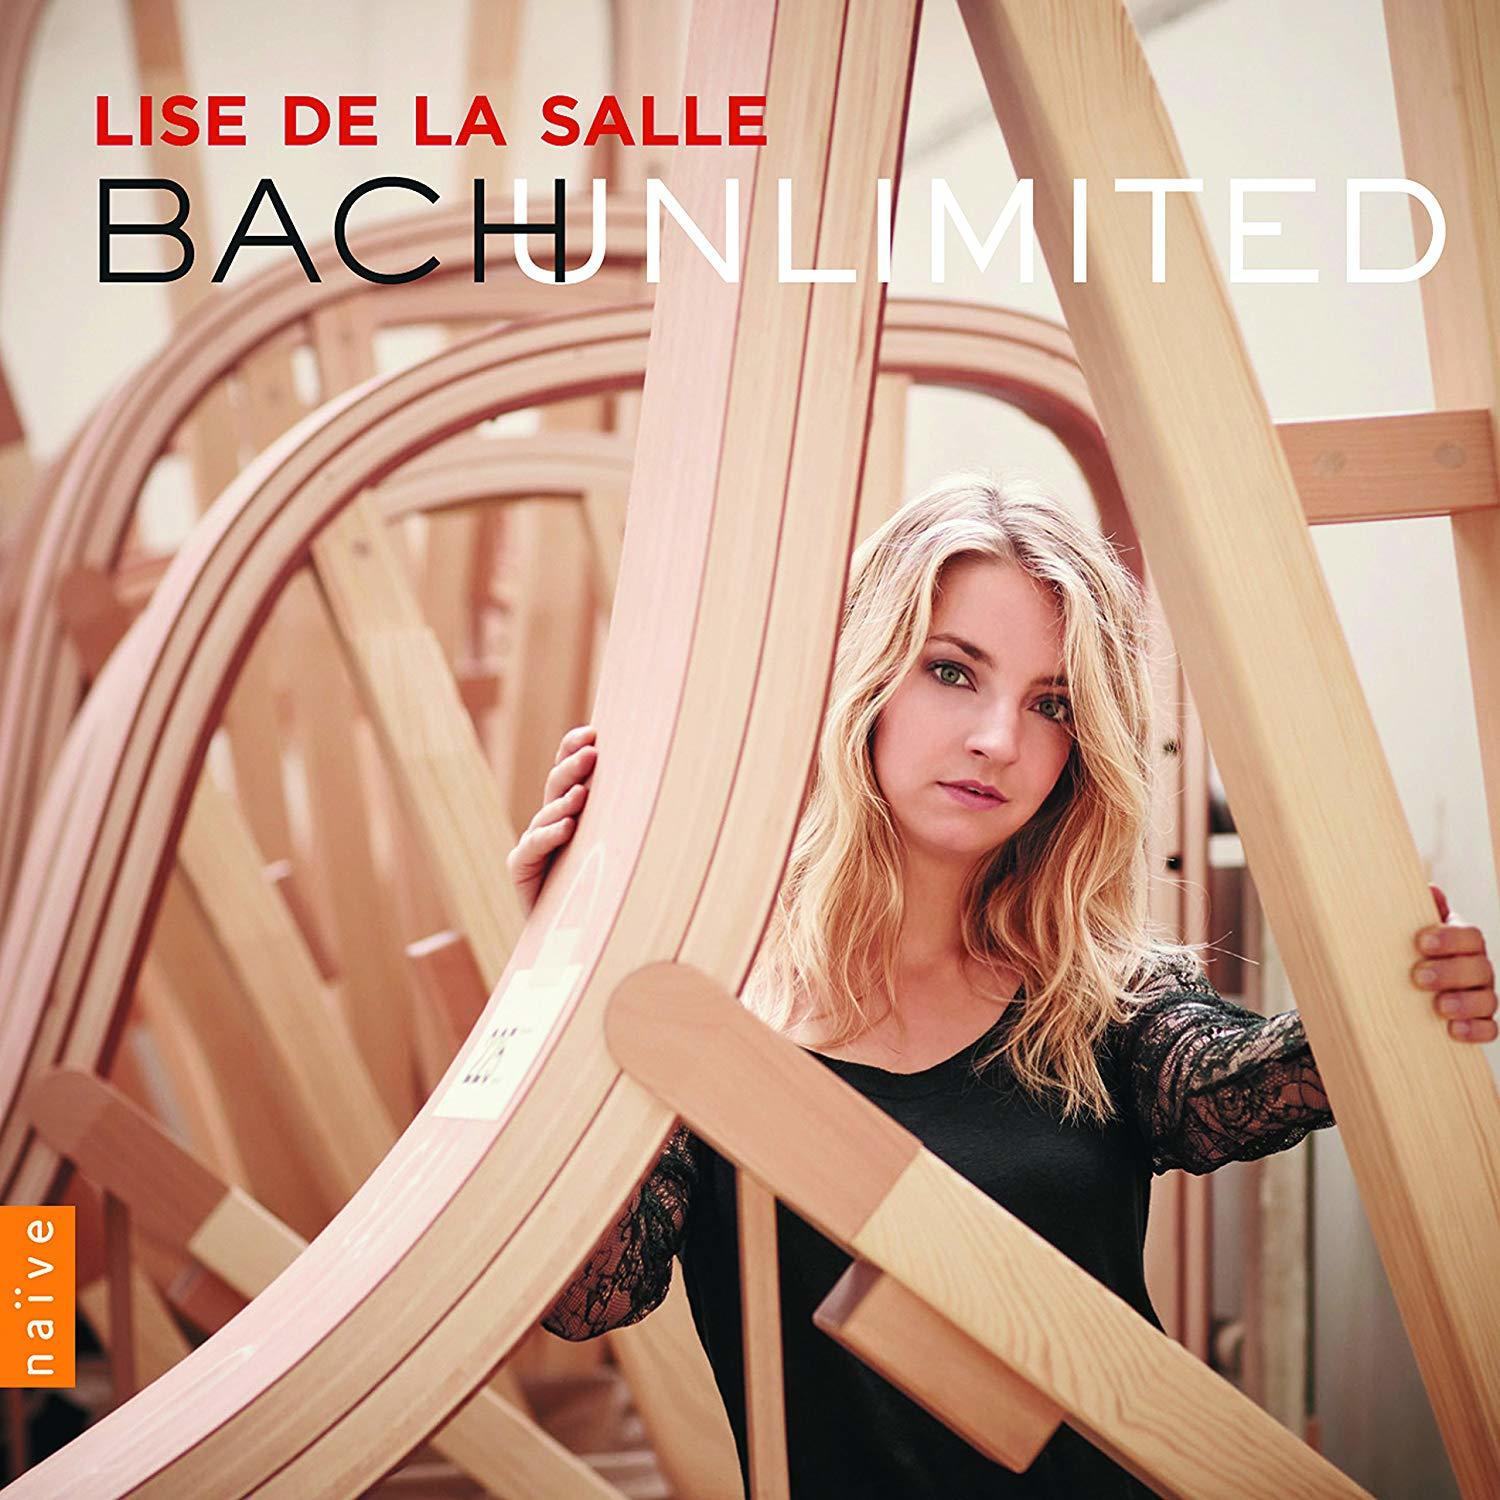 Bach: Unlimited